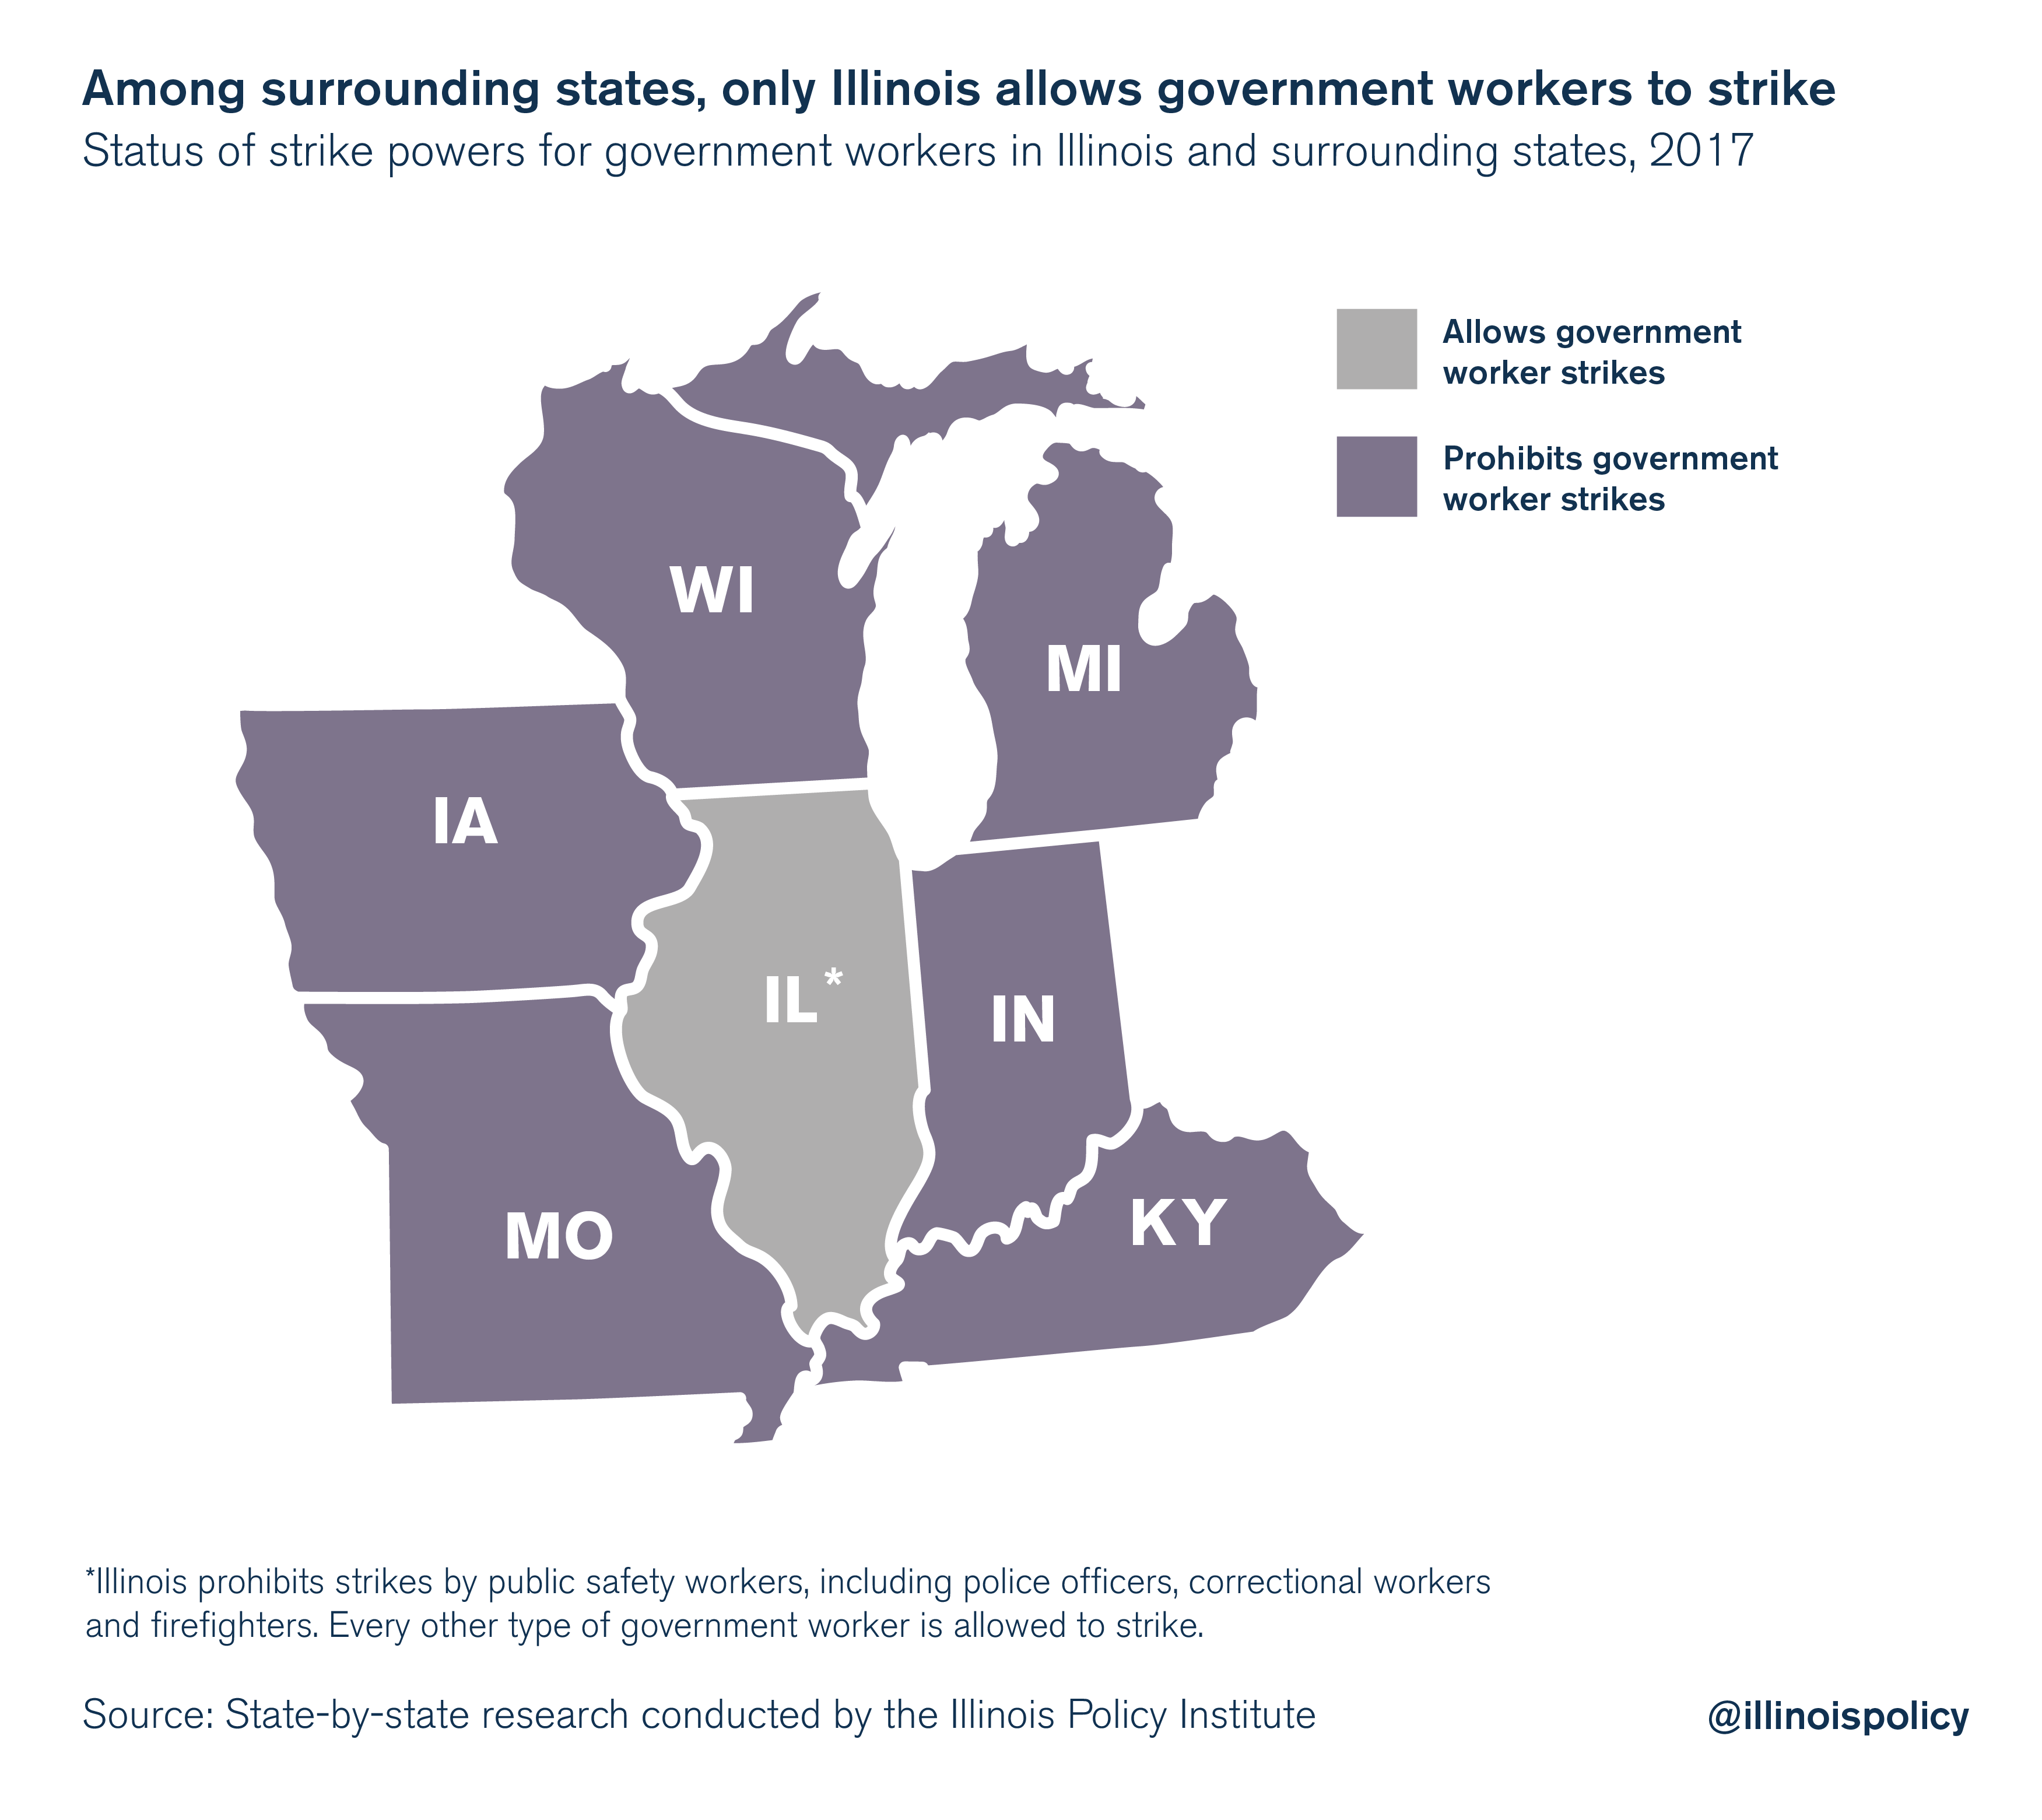 Among surrounding states, only Illinois allows government workers to strike